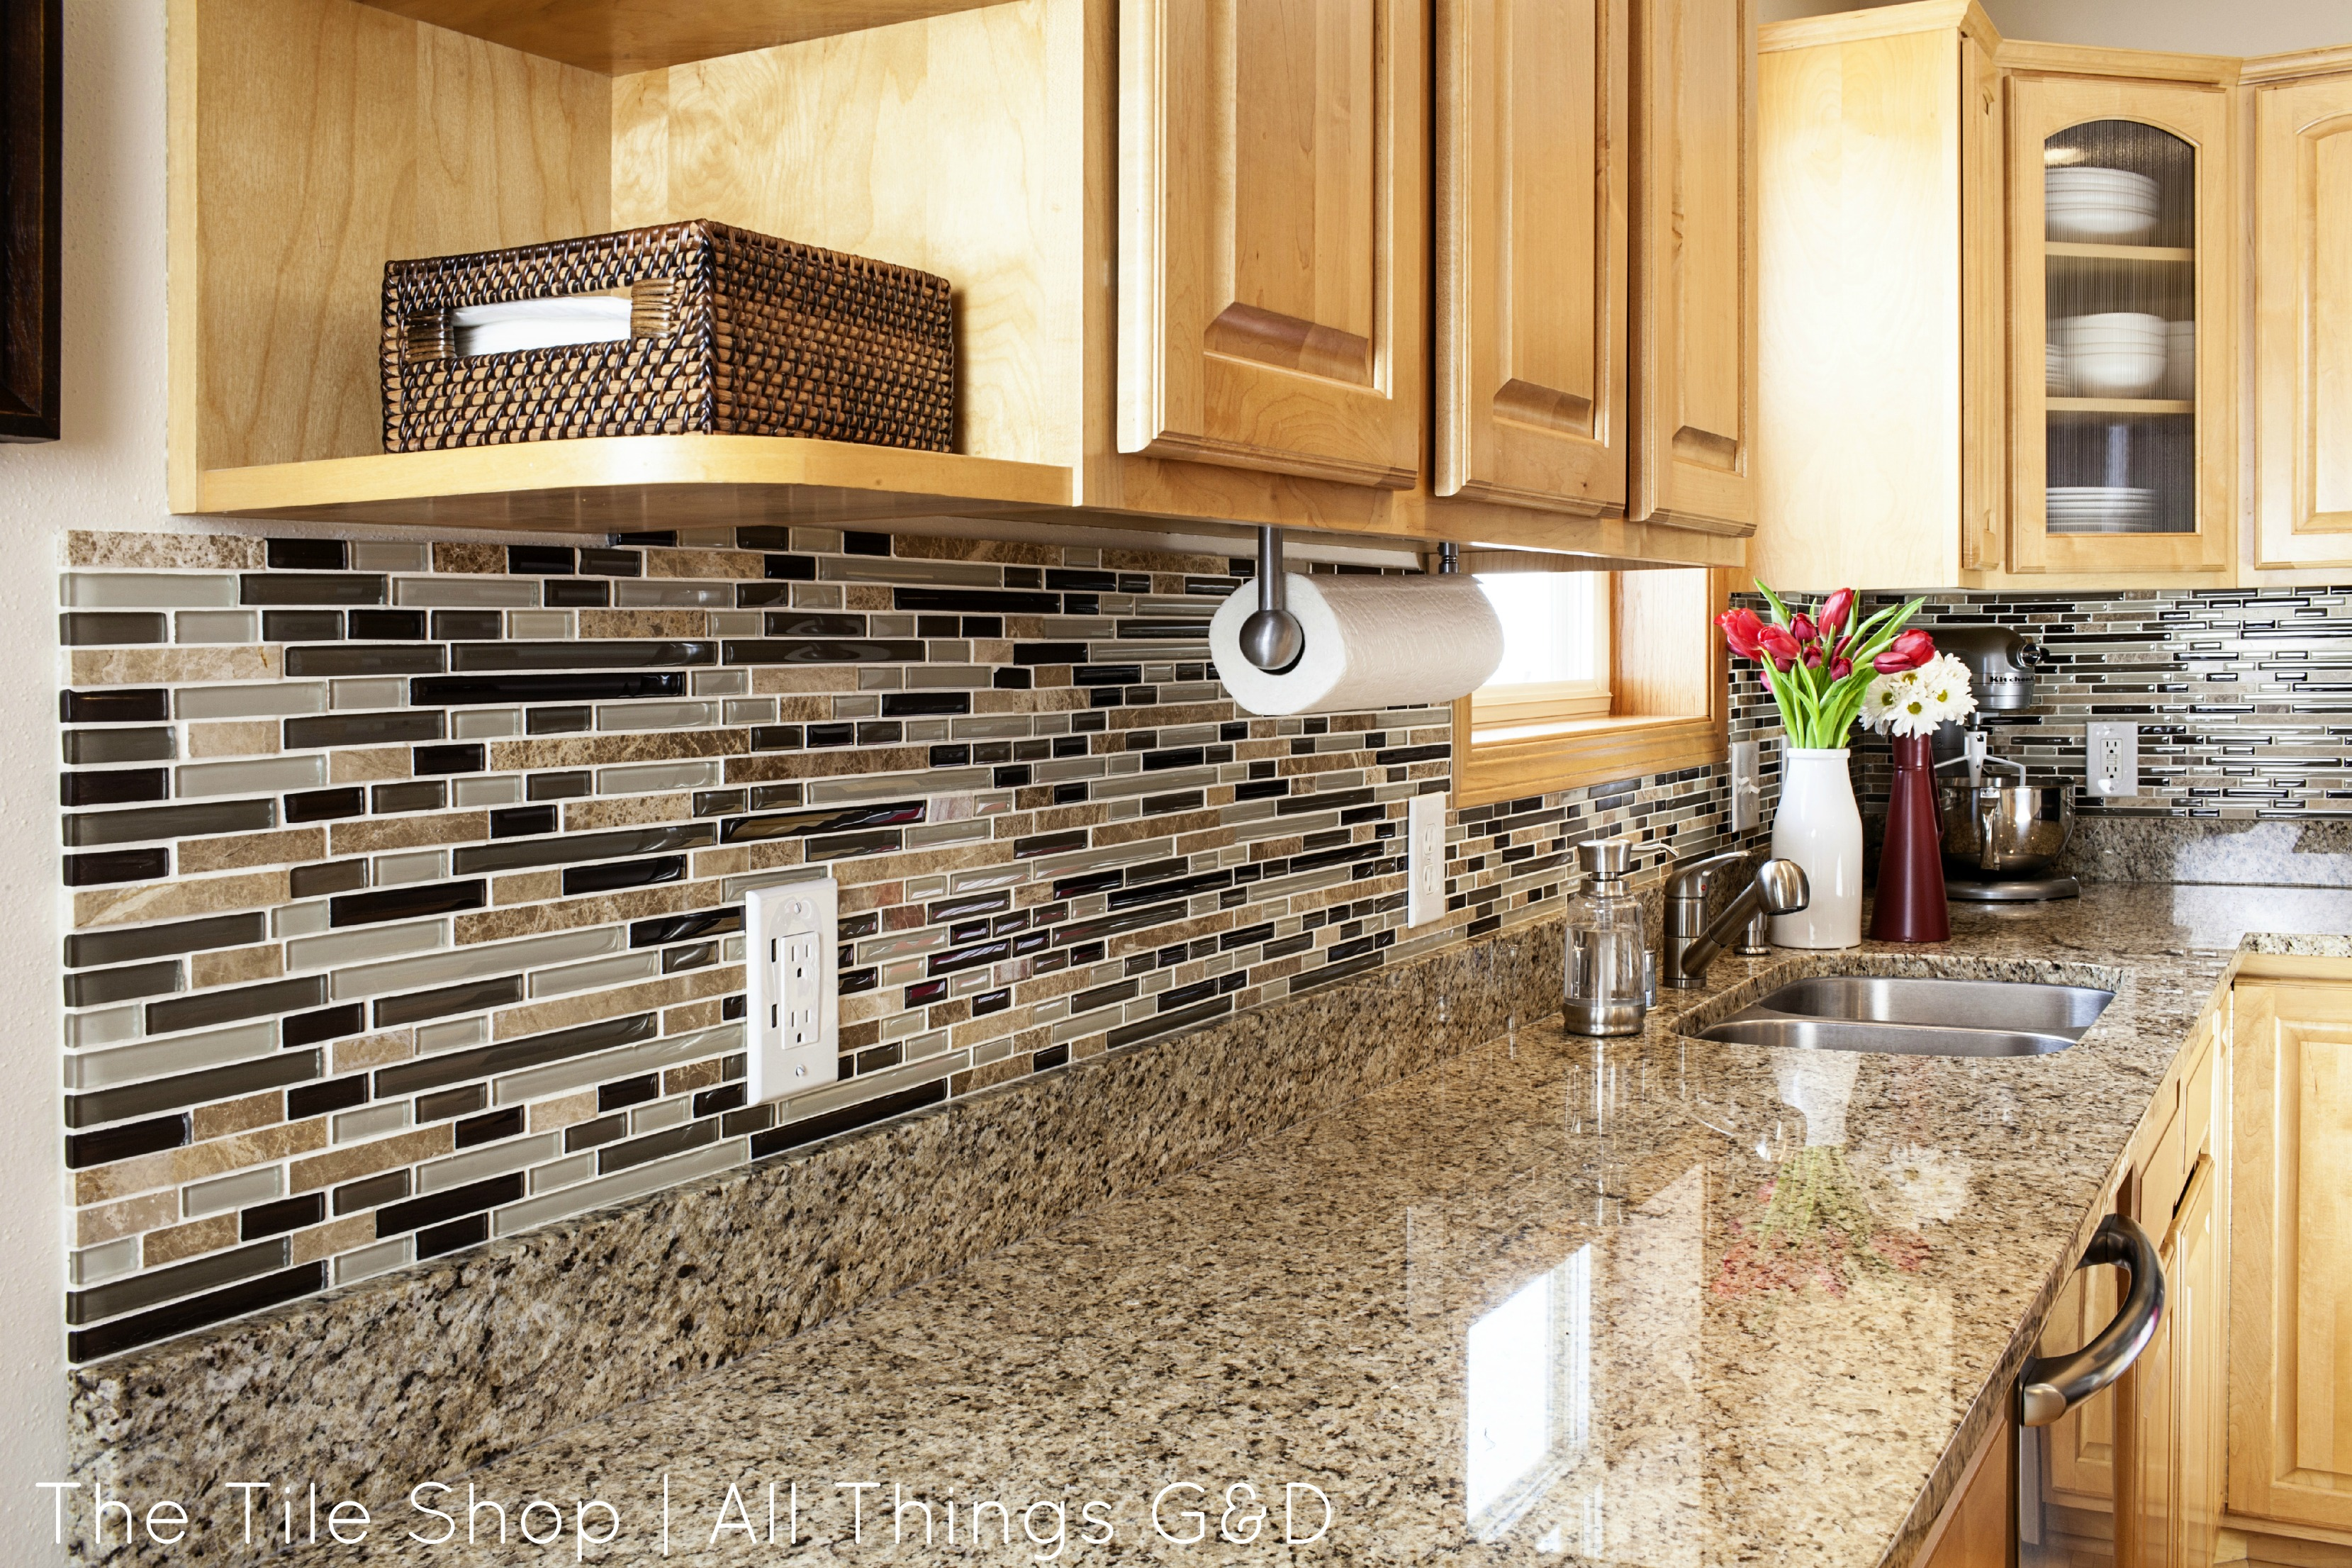 Diy Tile Backsplash Kitchen My Tile Shop Photo Shoot The After Pics All Things Gd